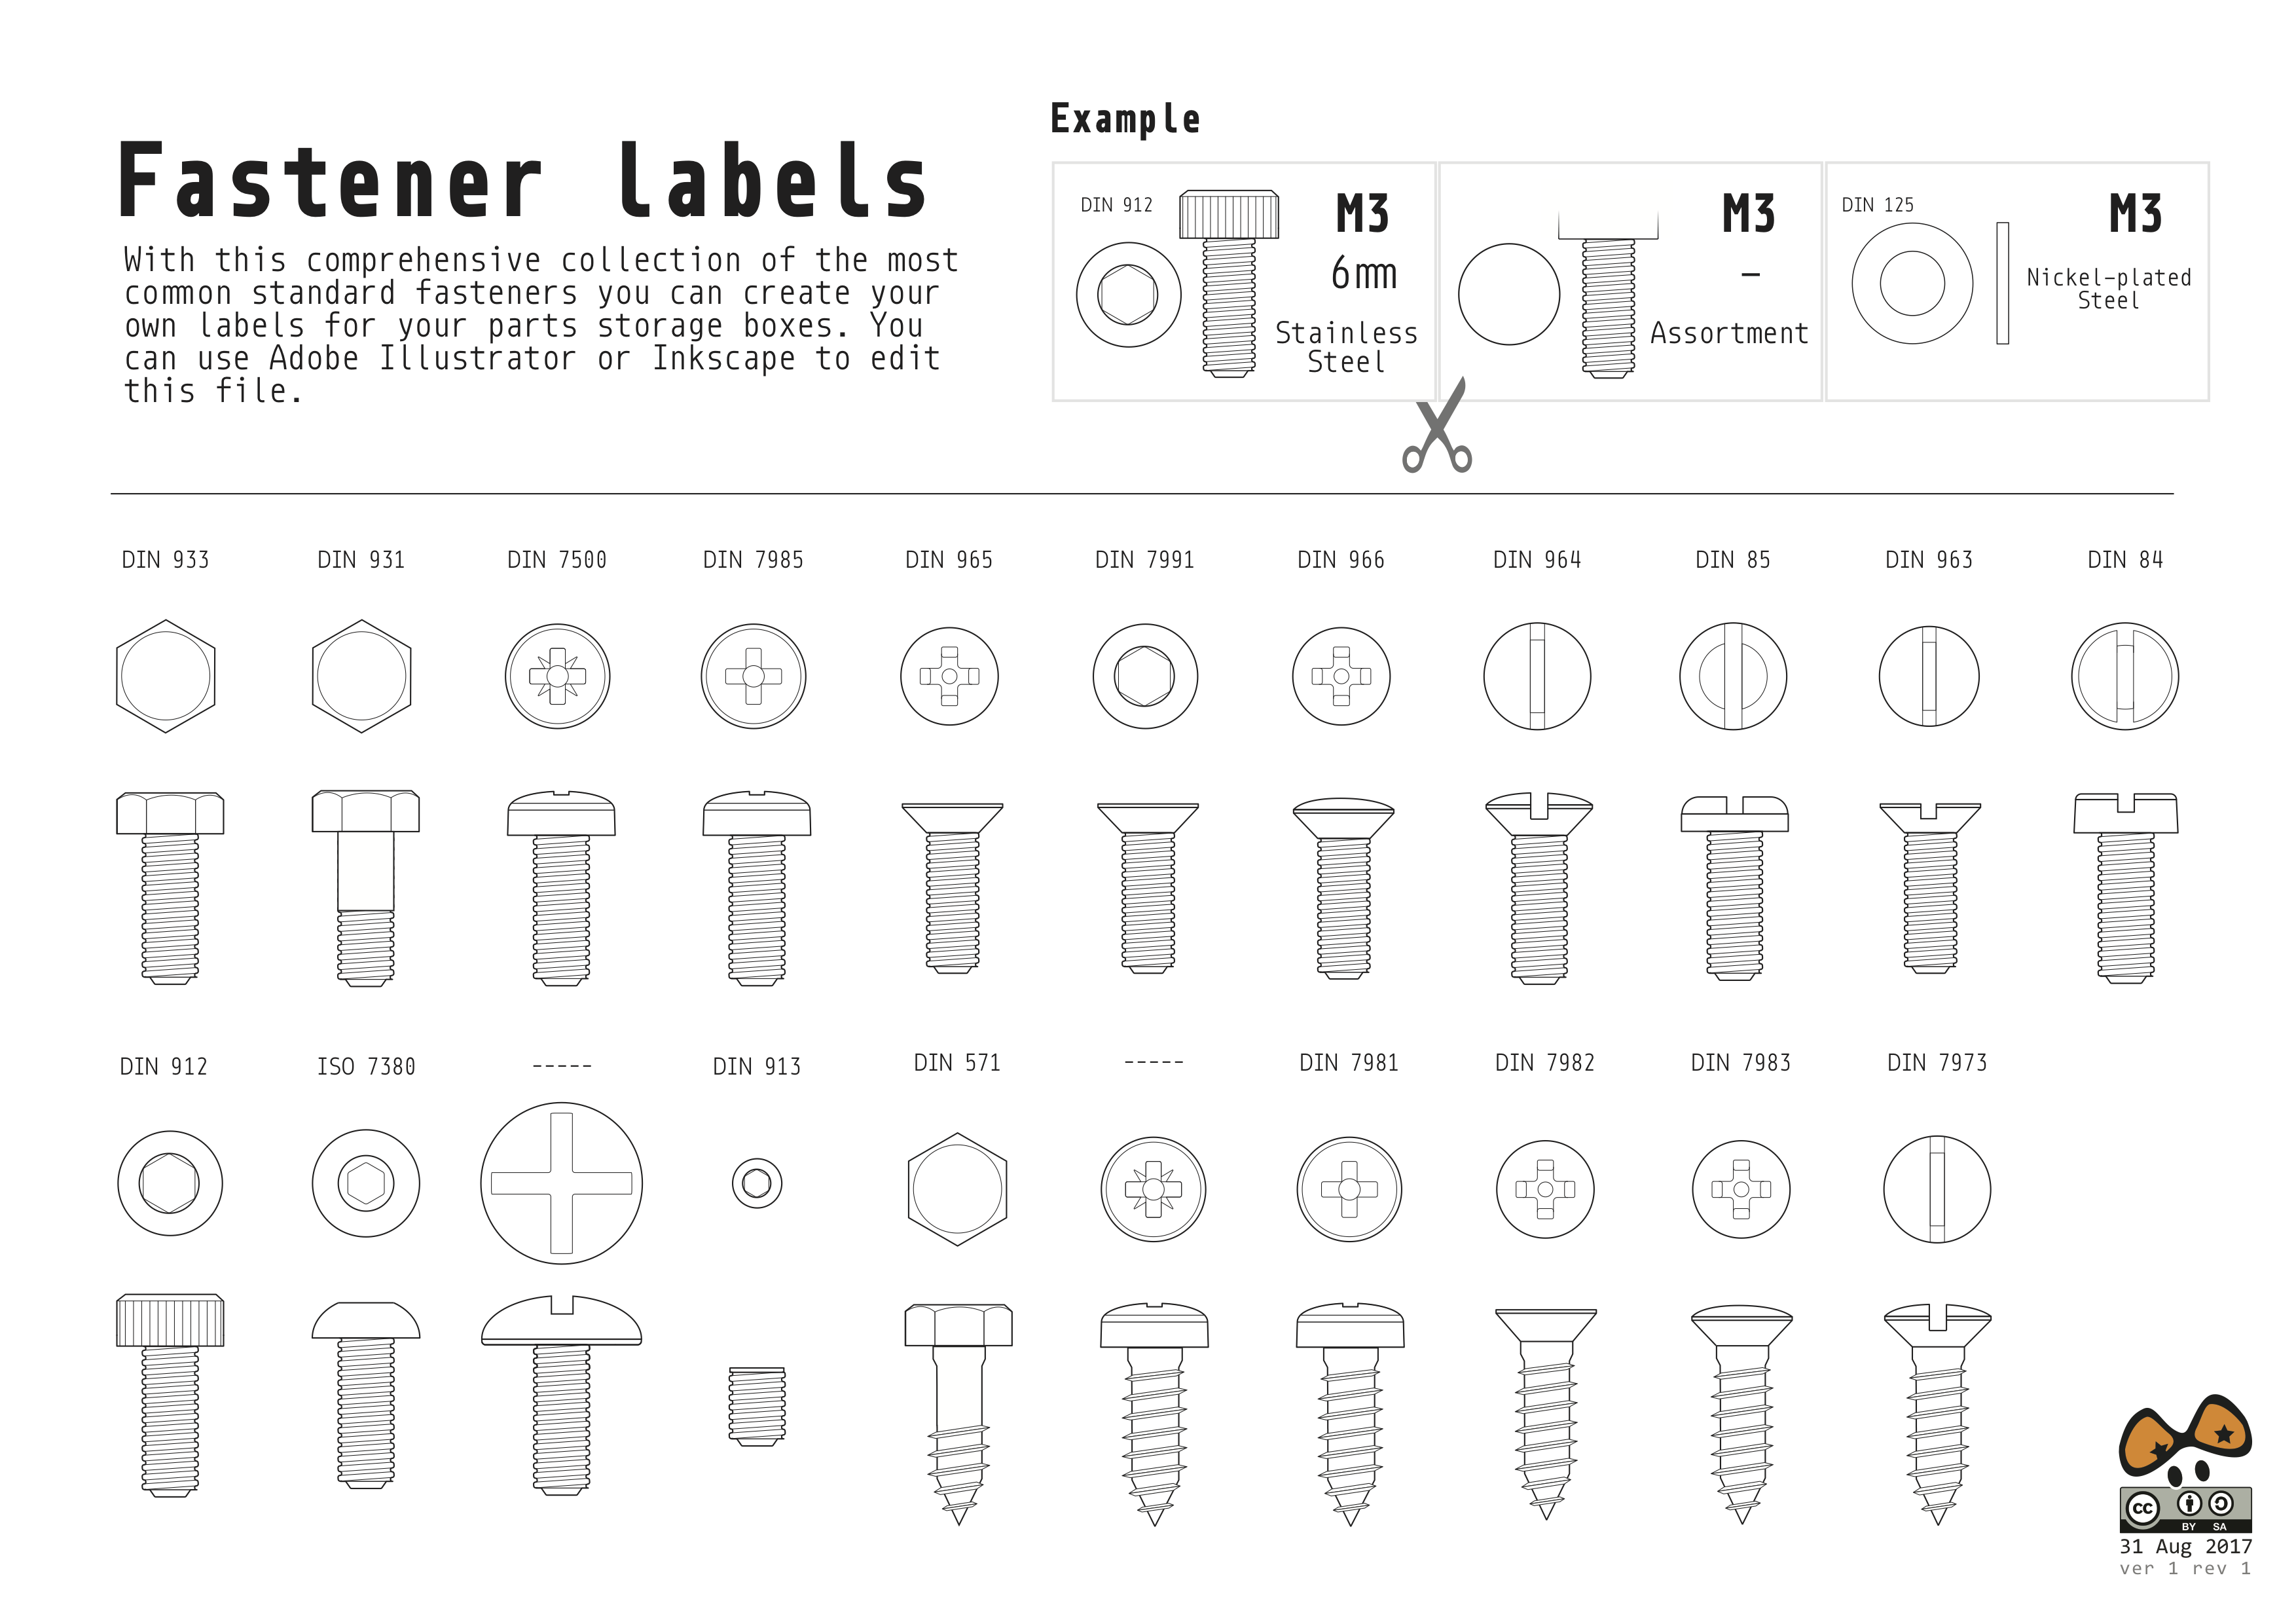 create labels for common standard fasteners with these